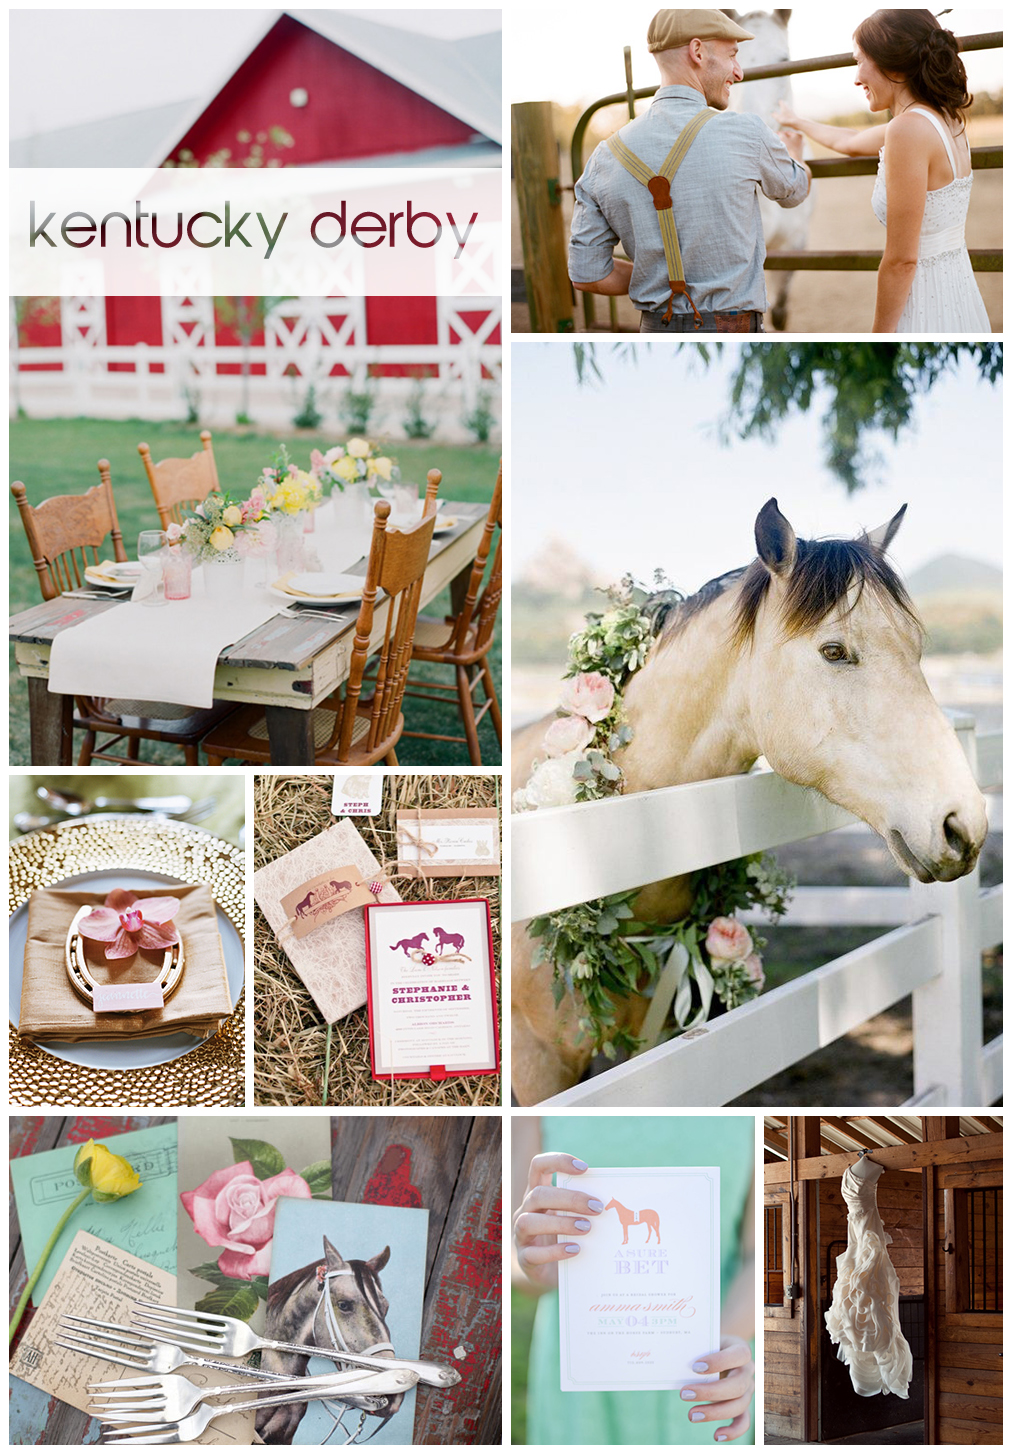 KentuckyDerby_LW